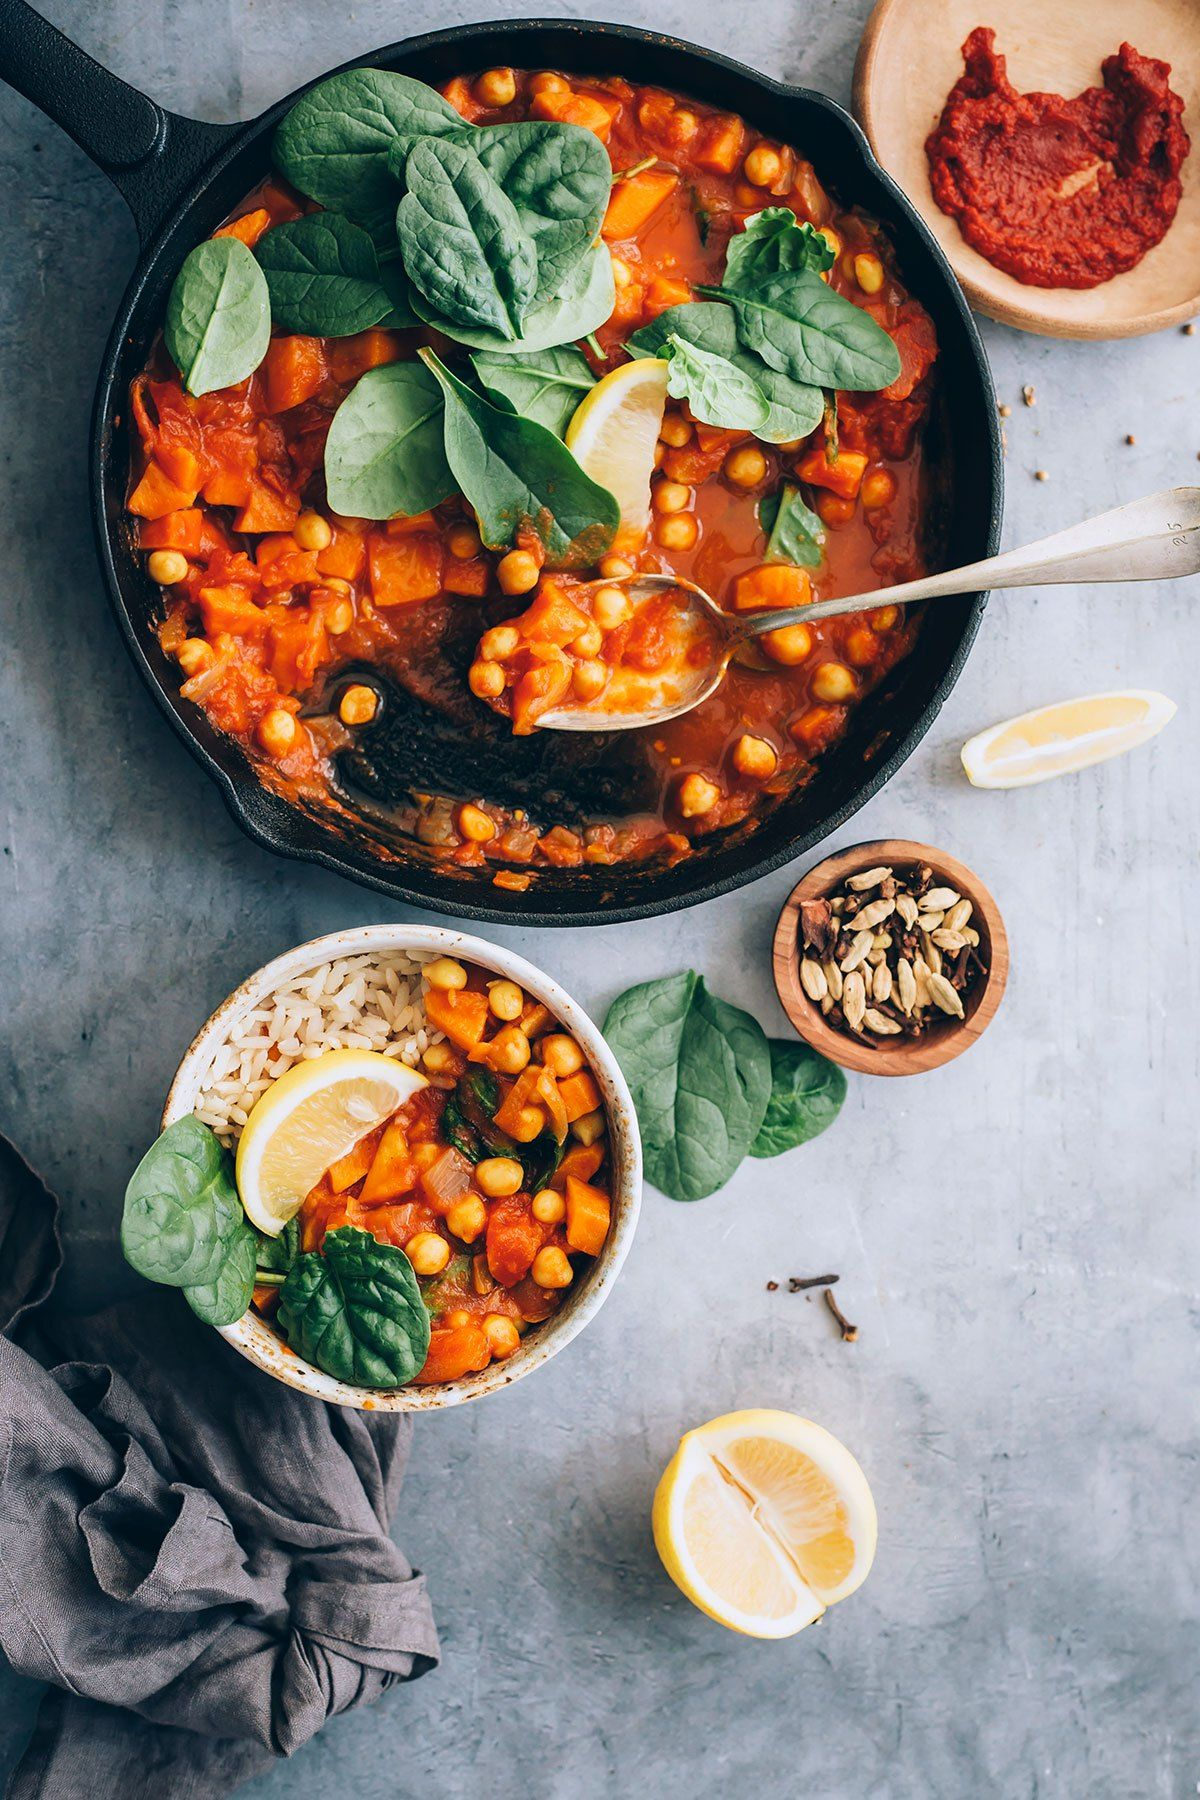 Moroccan Inspired Sweet Potato And Chickpea Stew With Spinach